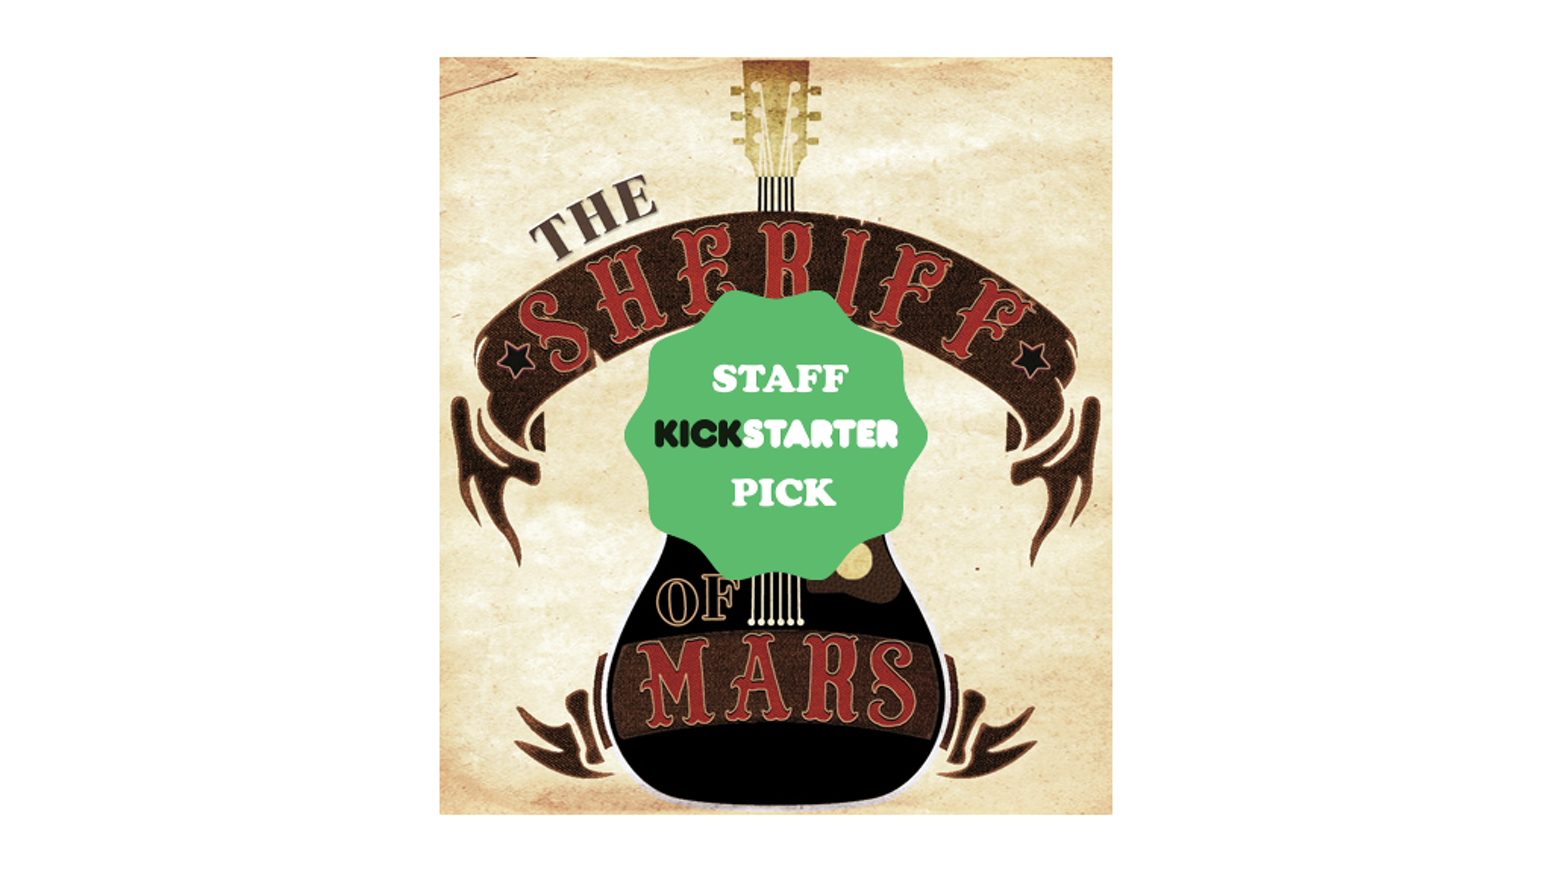 The Sheriff of Mars Music Documentary by Jason Ressler & Matthew